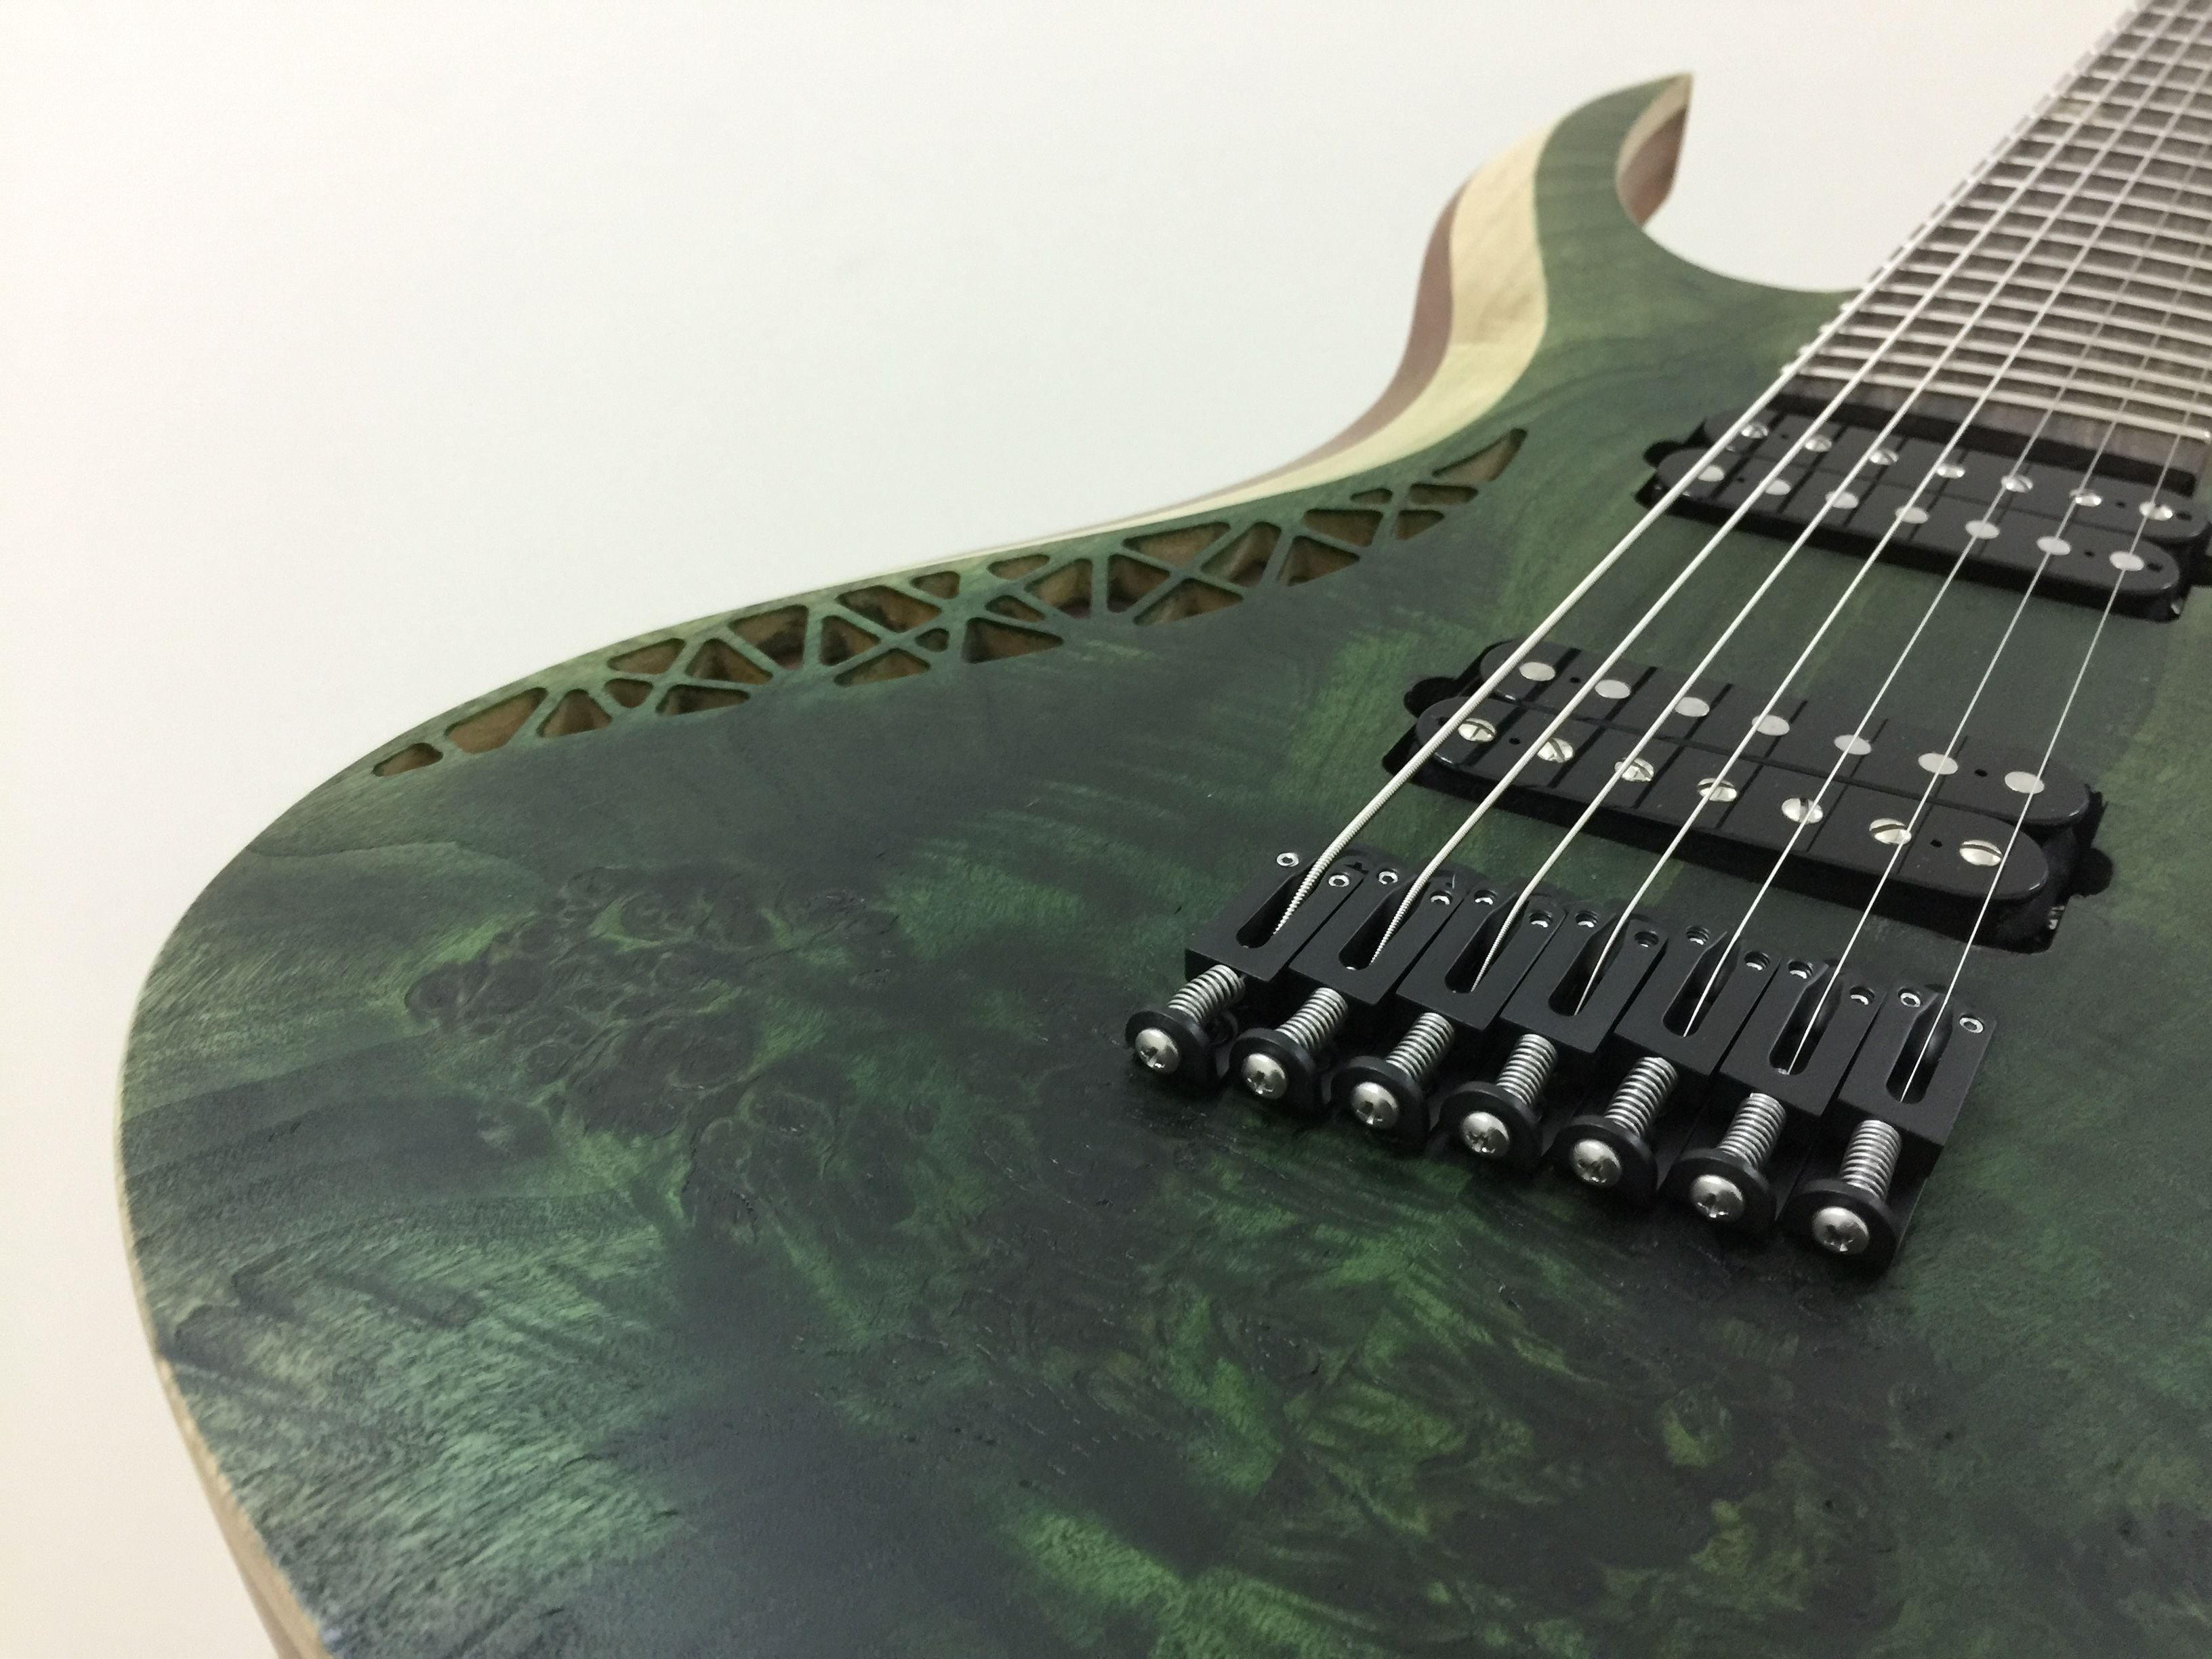 Tropic green Rhea 7 strings multiscale